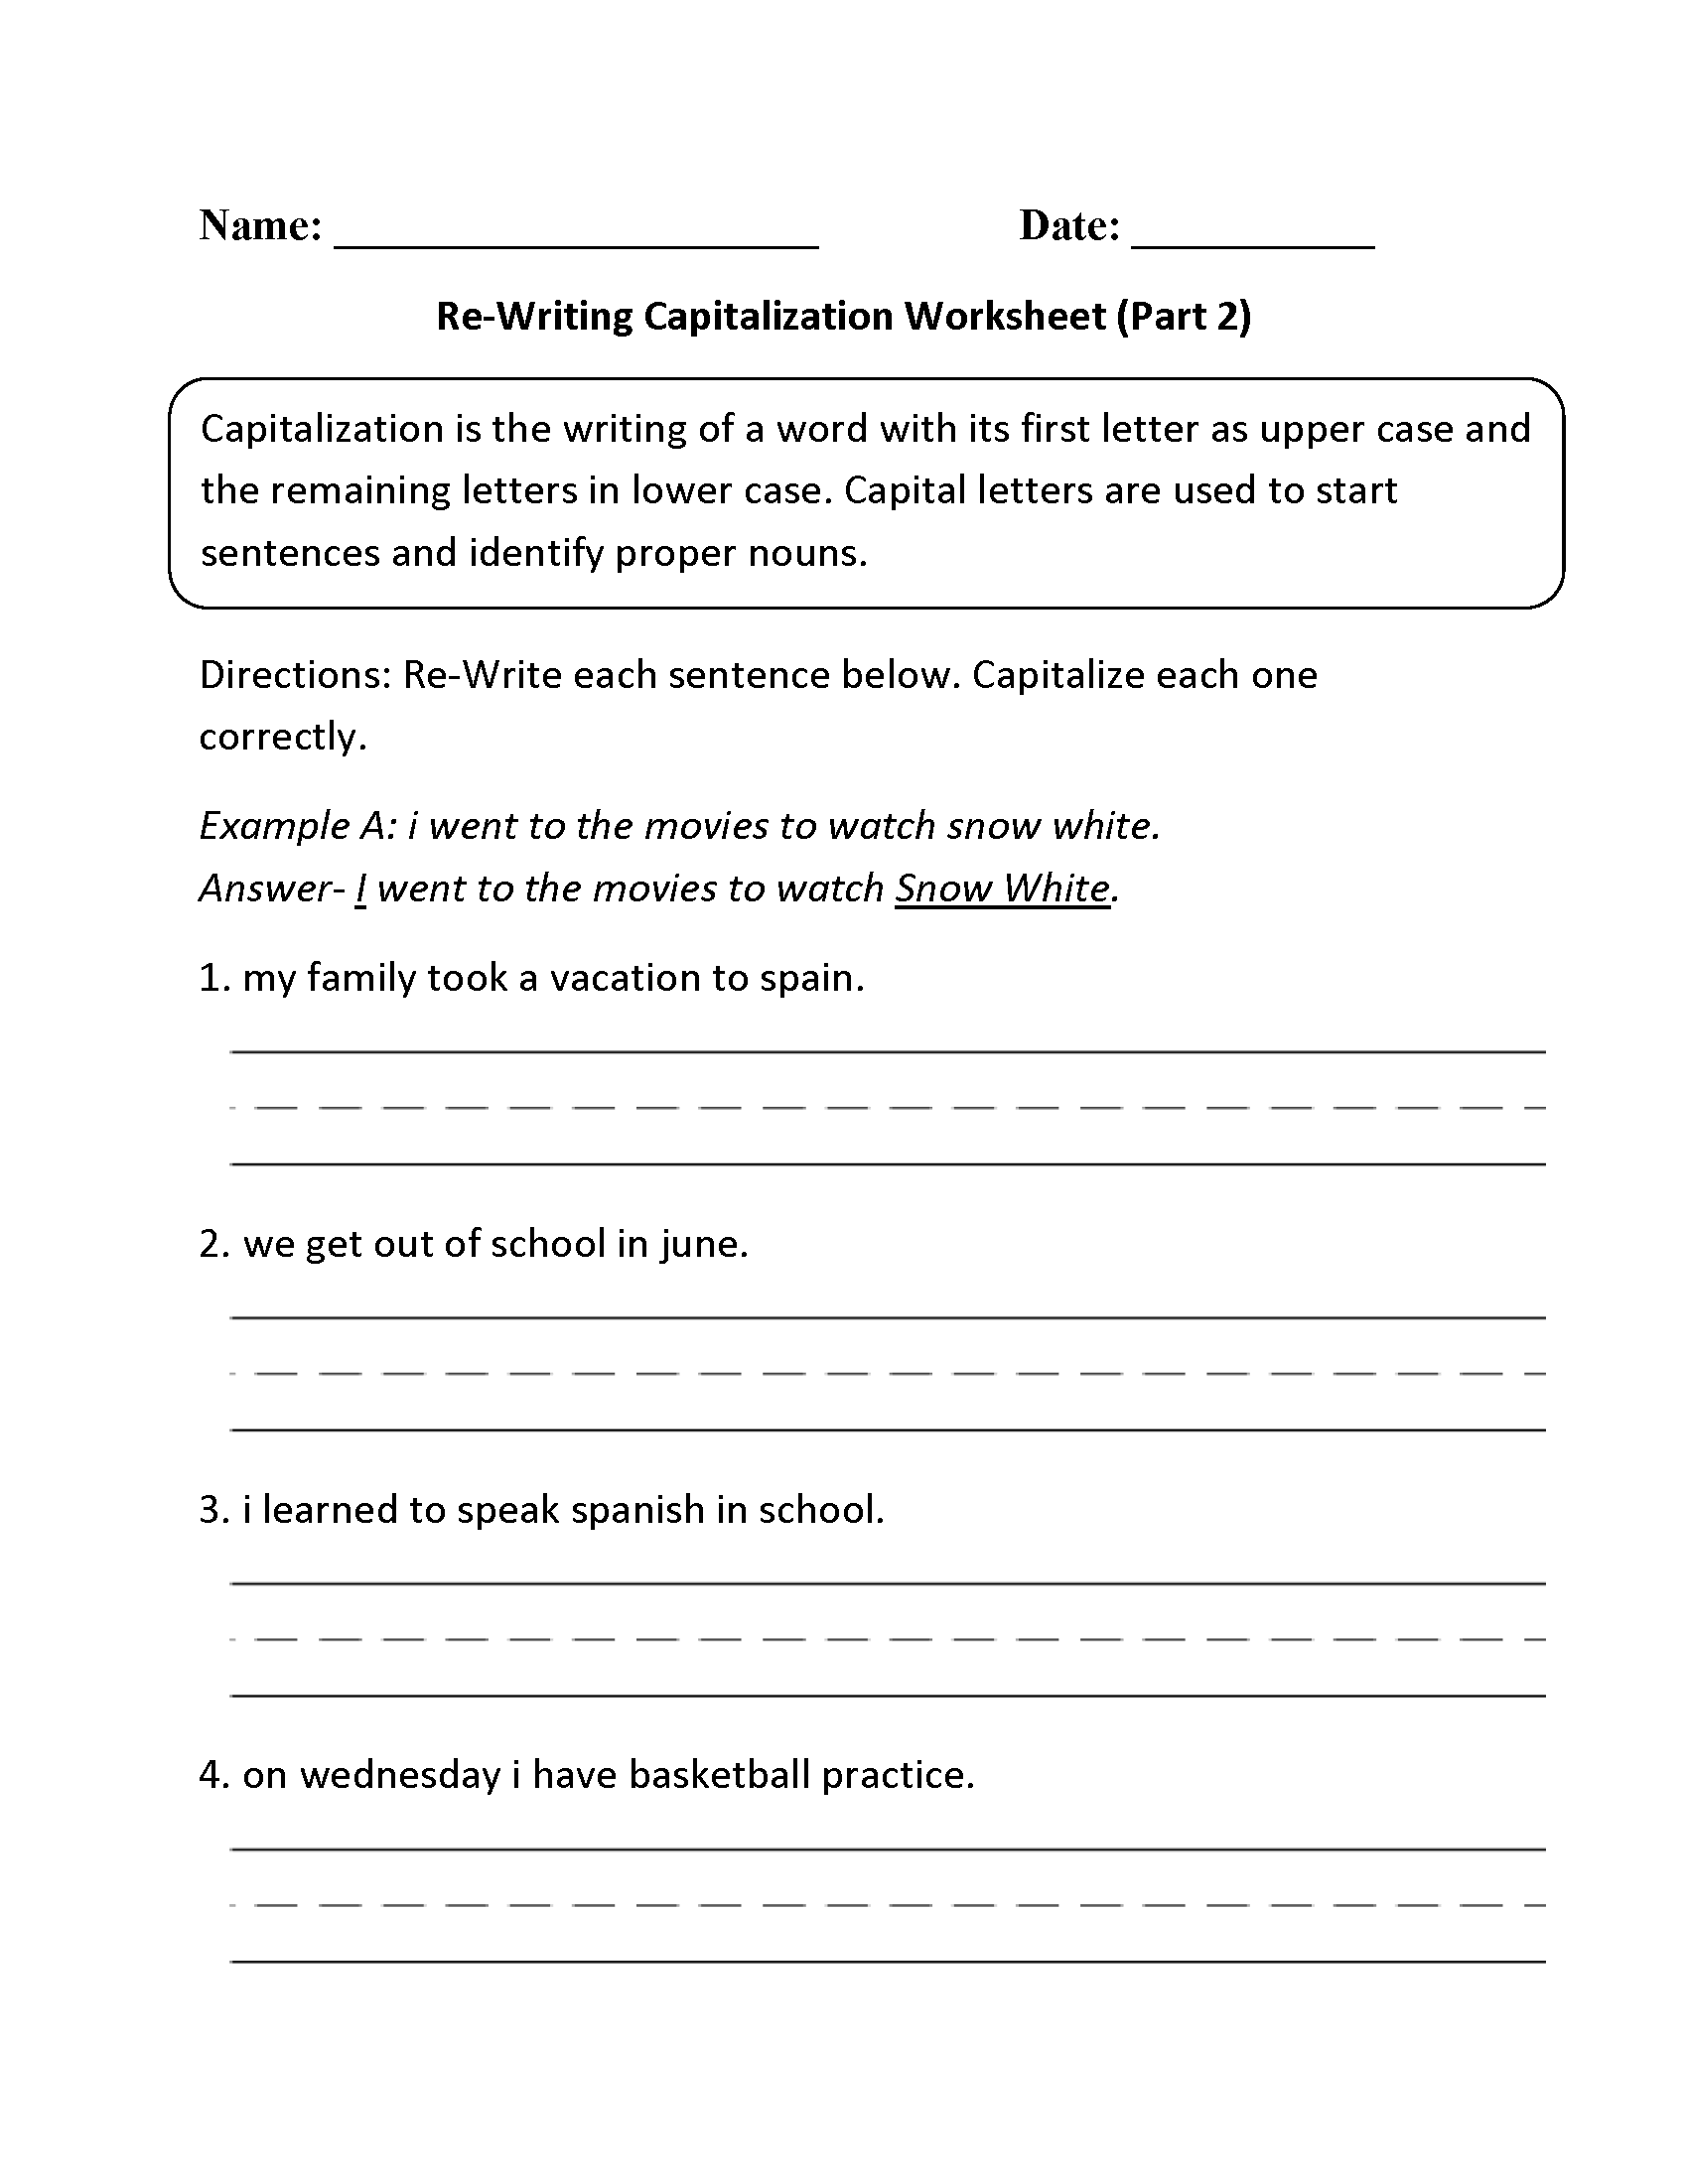 Printables 3rd Grade Capitalization Worksheets englishlinx com capitalization worksheets re writing worksheet part 2